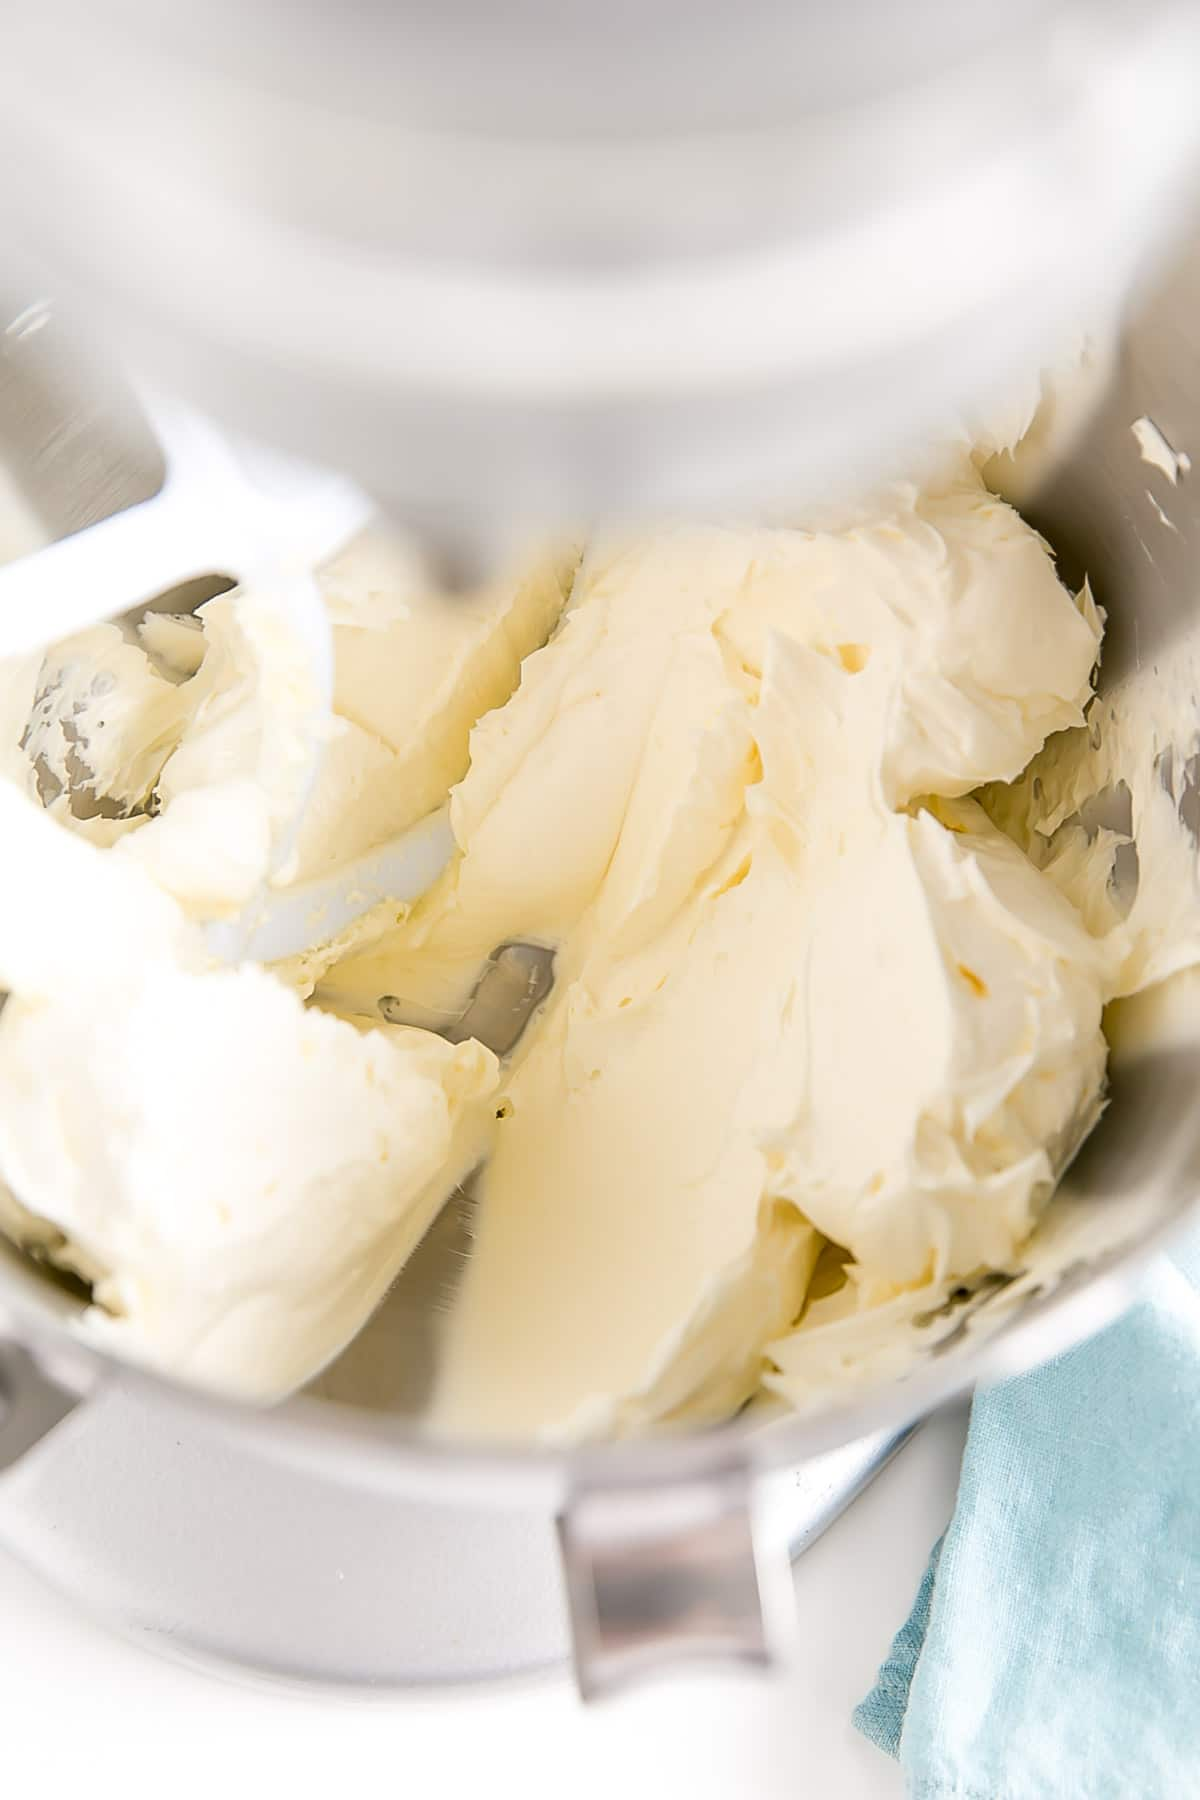 Butter whipped until it's pale and fluffy.